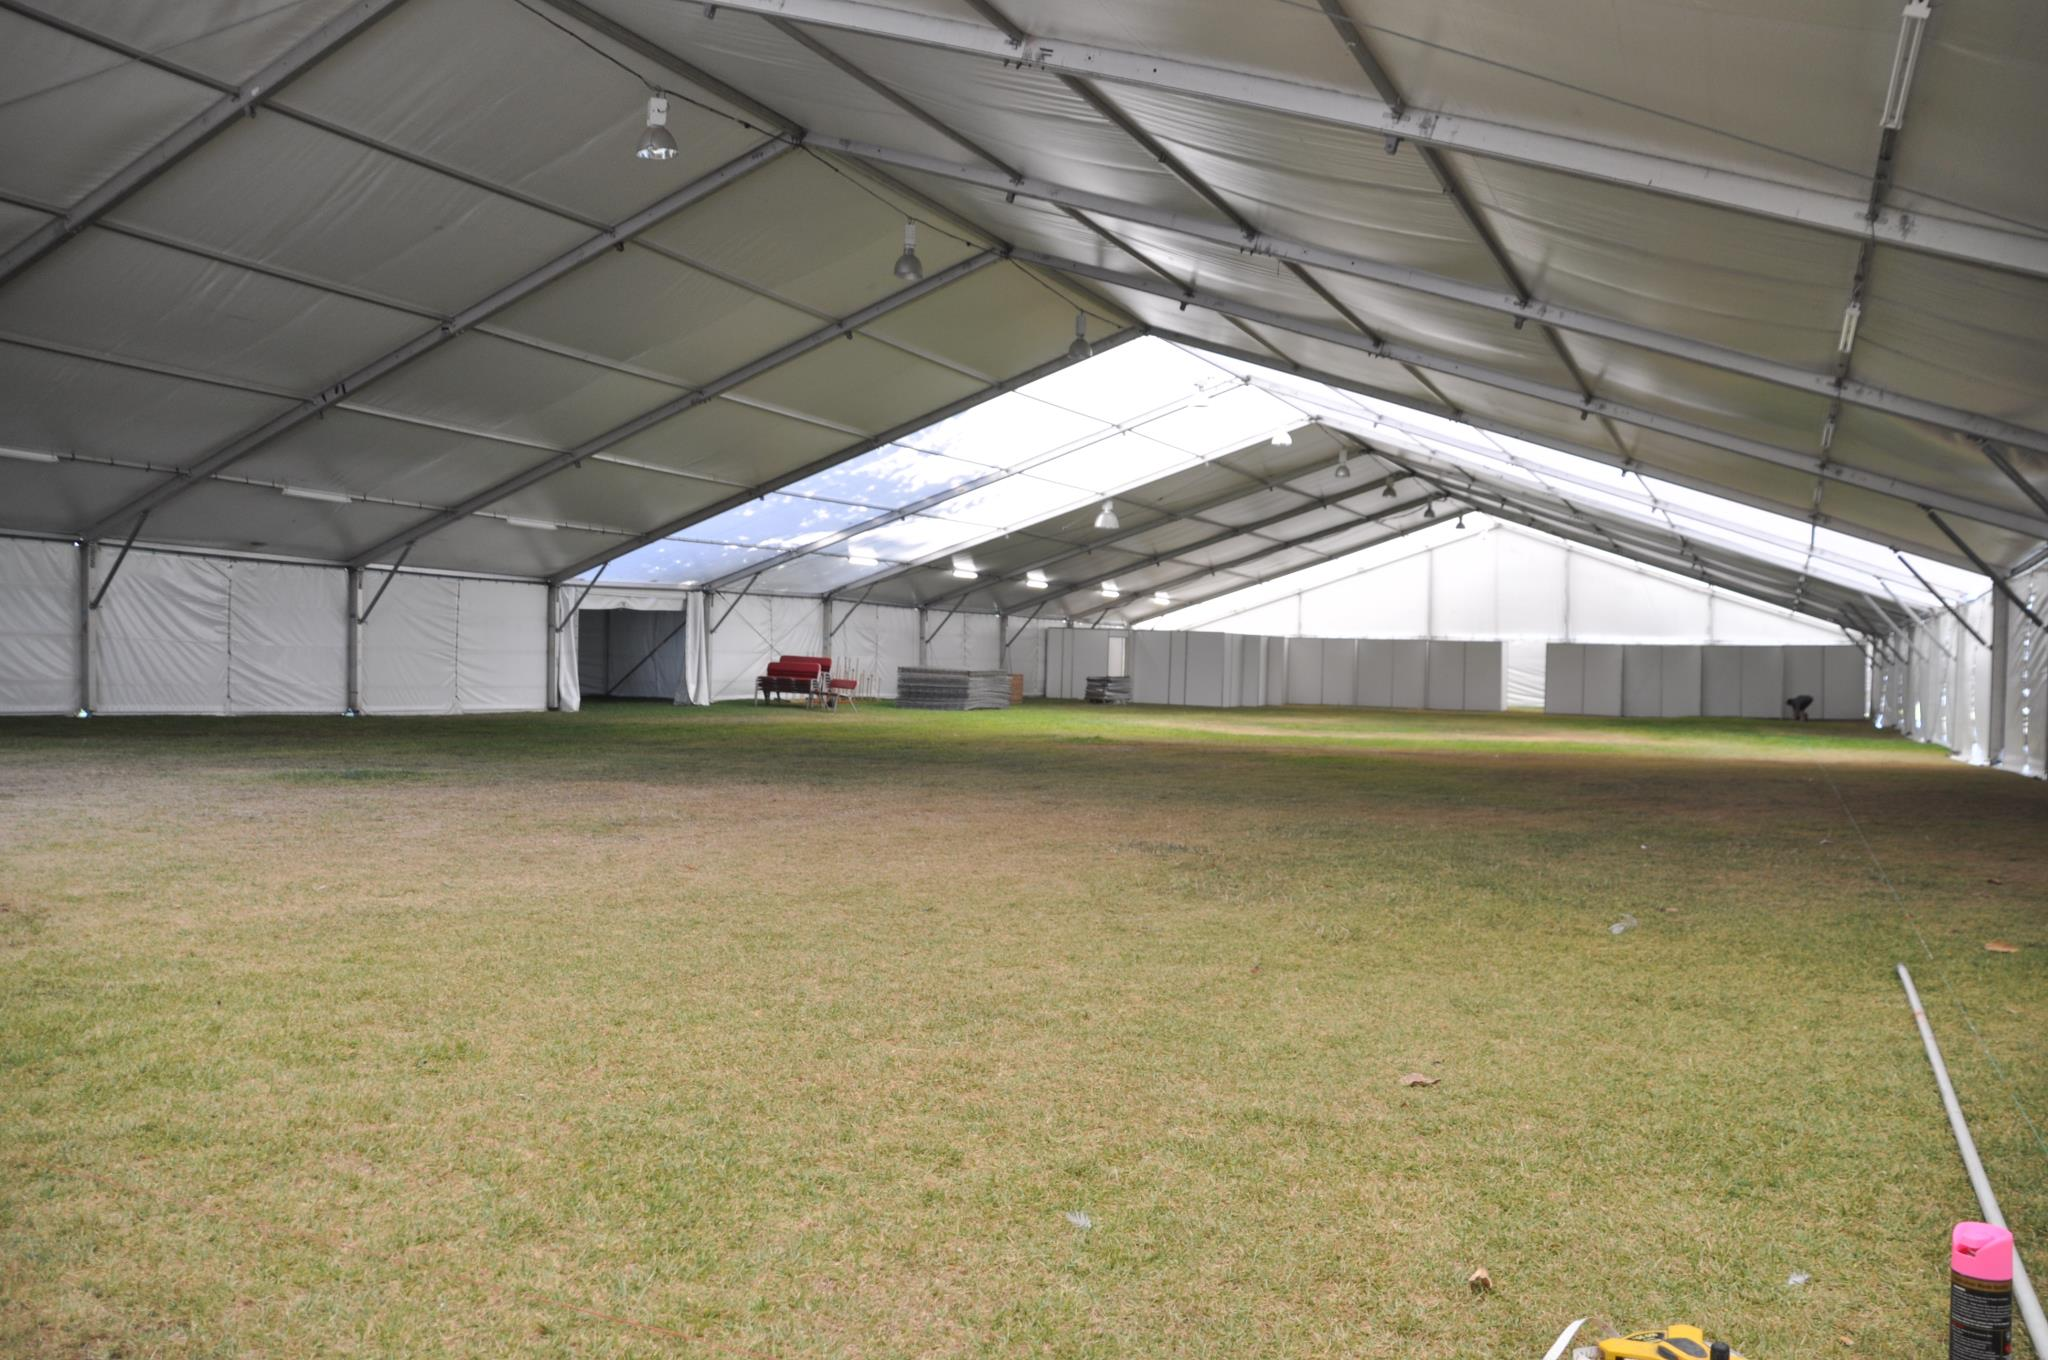 The big marquee is ready for the display boards and the paintings with a thousand stories to tell!